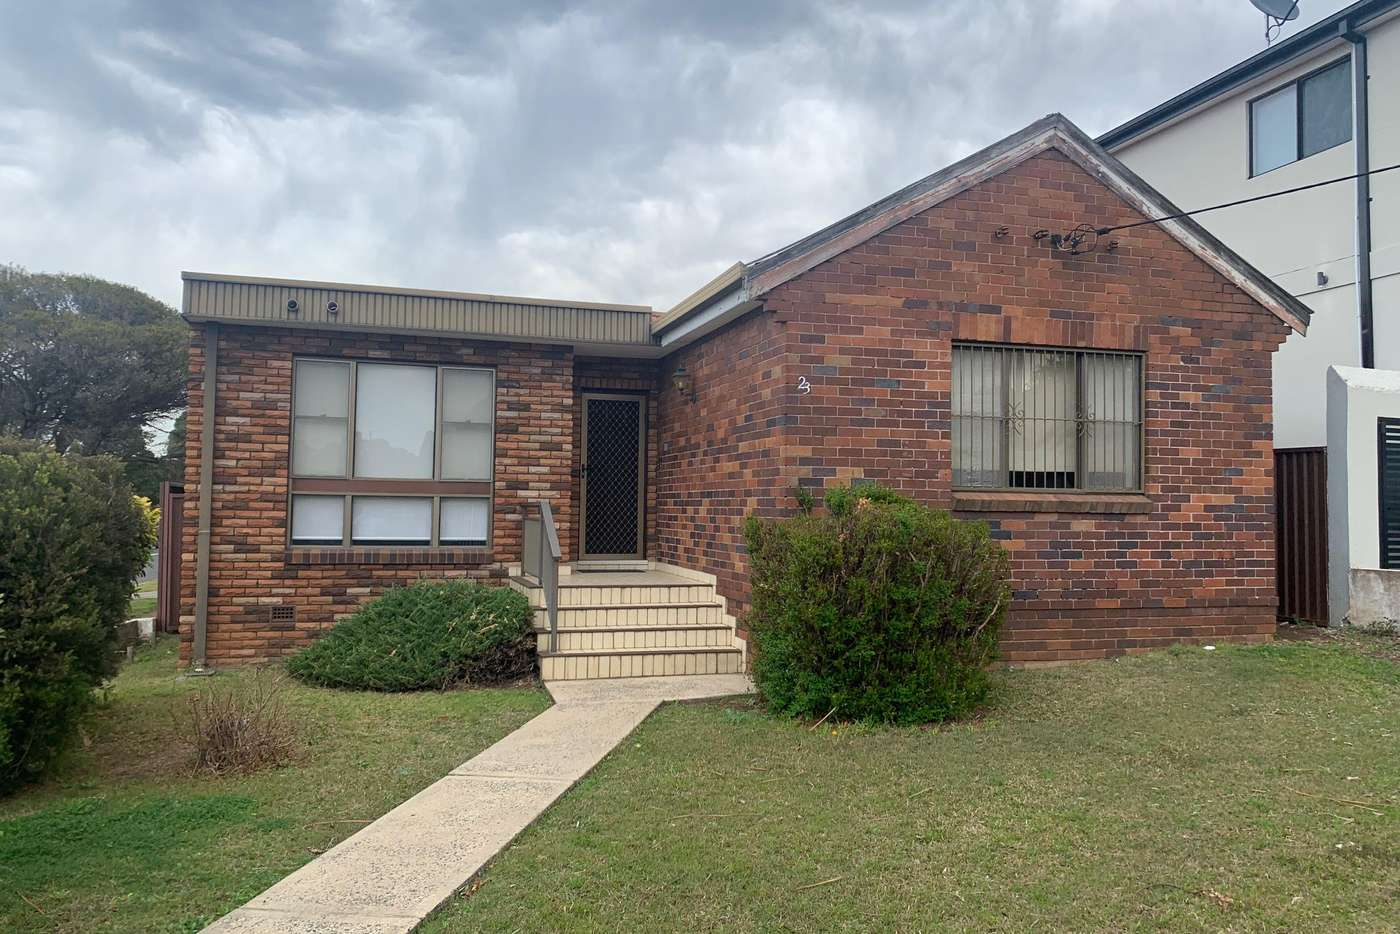 Main view of Homely house listing, 23 Cooeeyana Pde, Greenacre NSW 2190